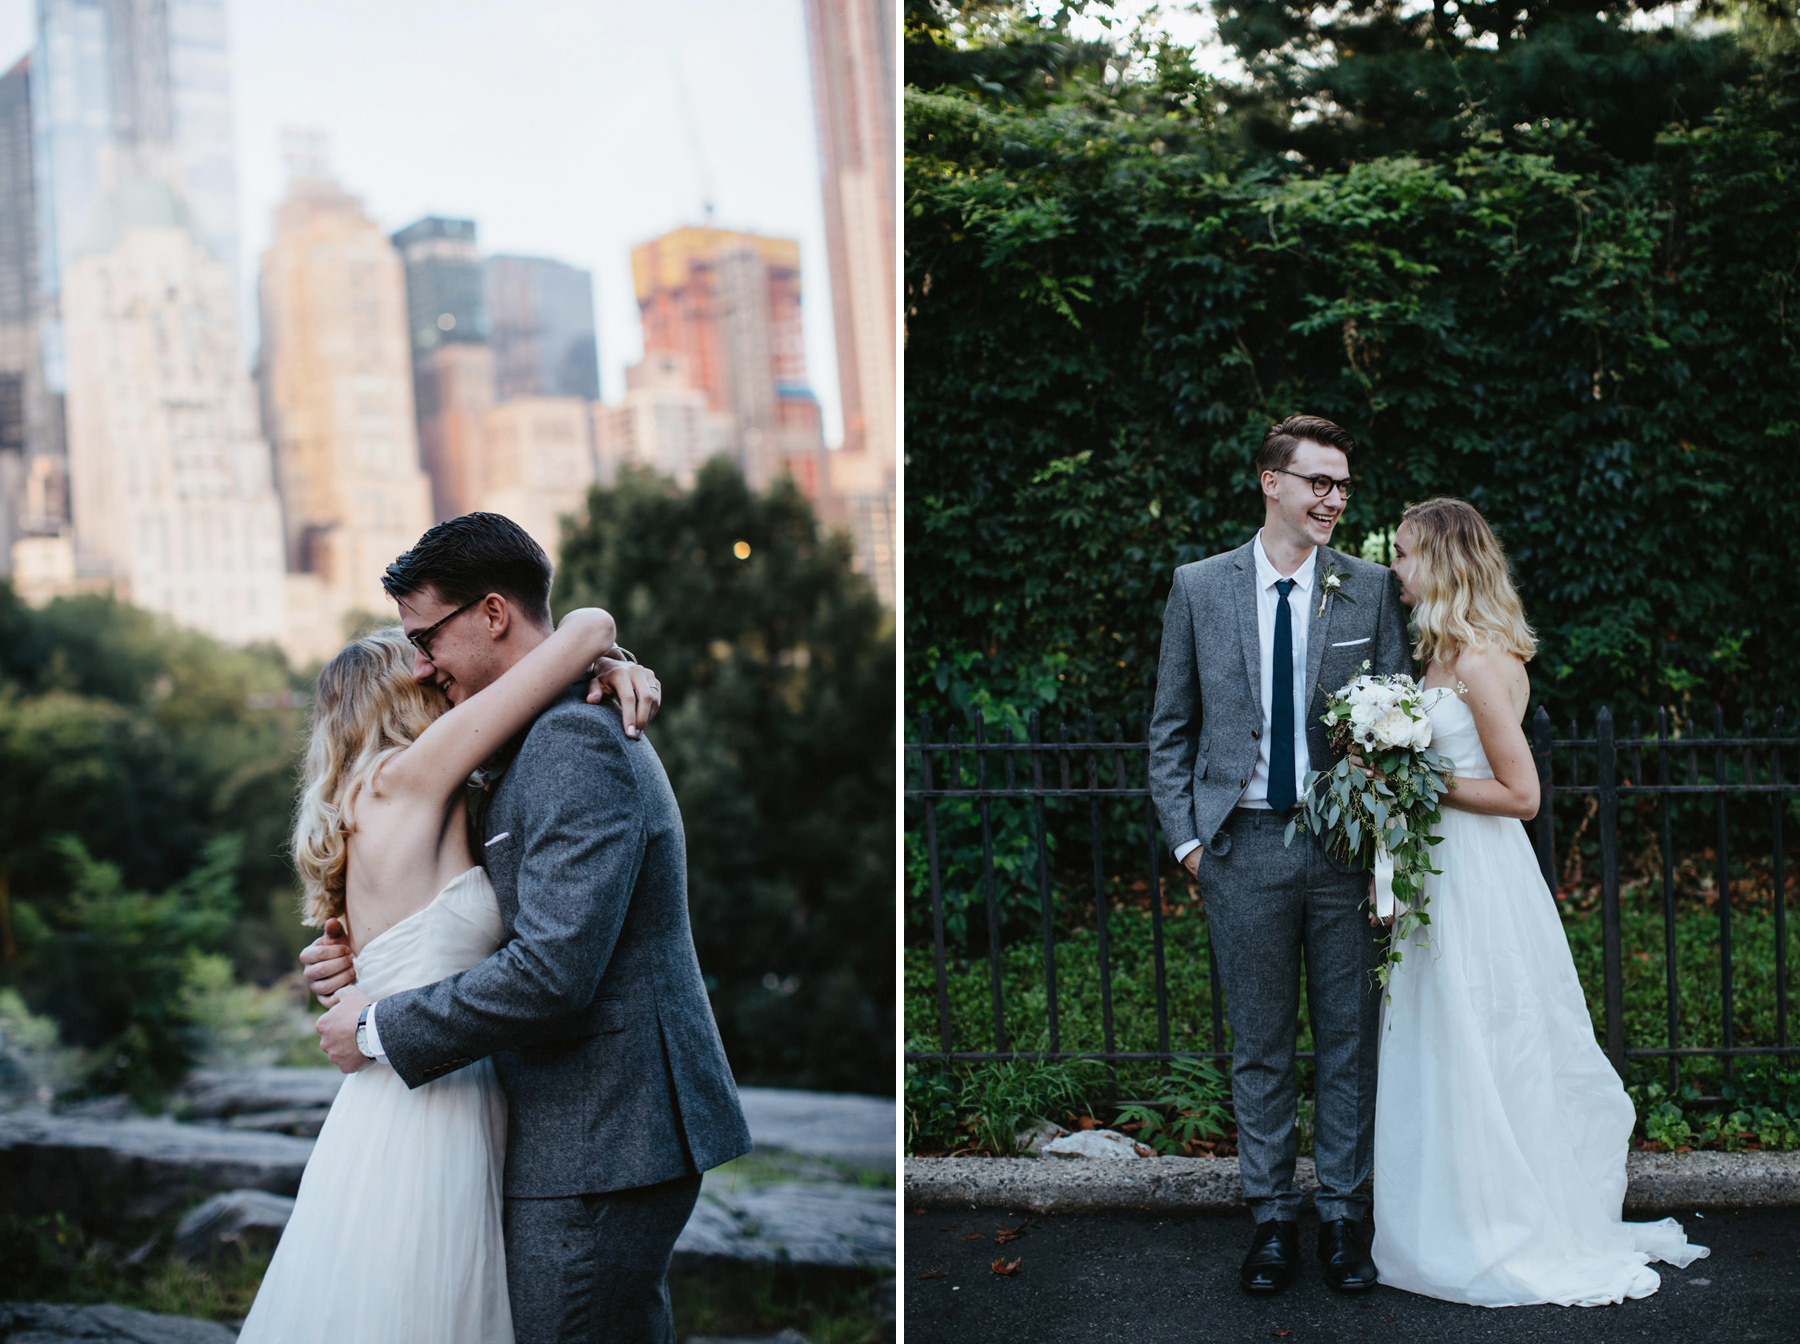 56_Central Park New York City Elopement_Kindling Wedding Photography.JPG